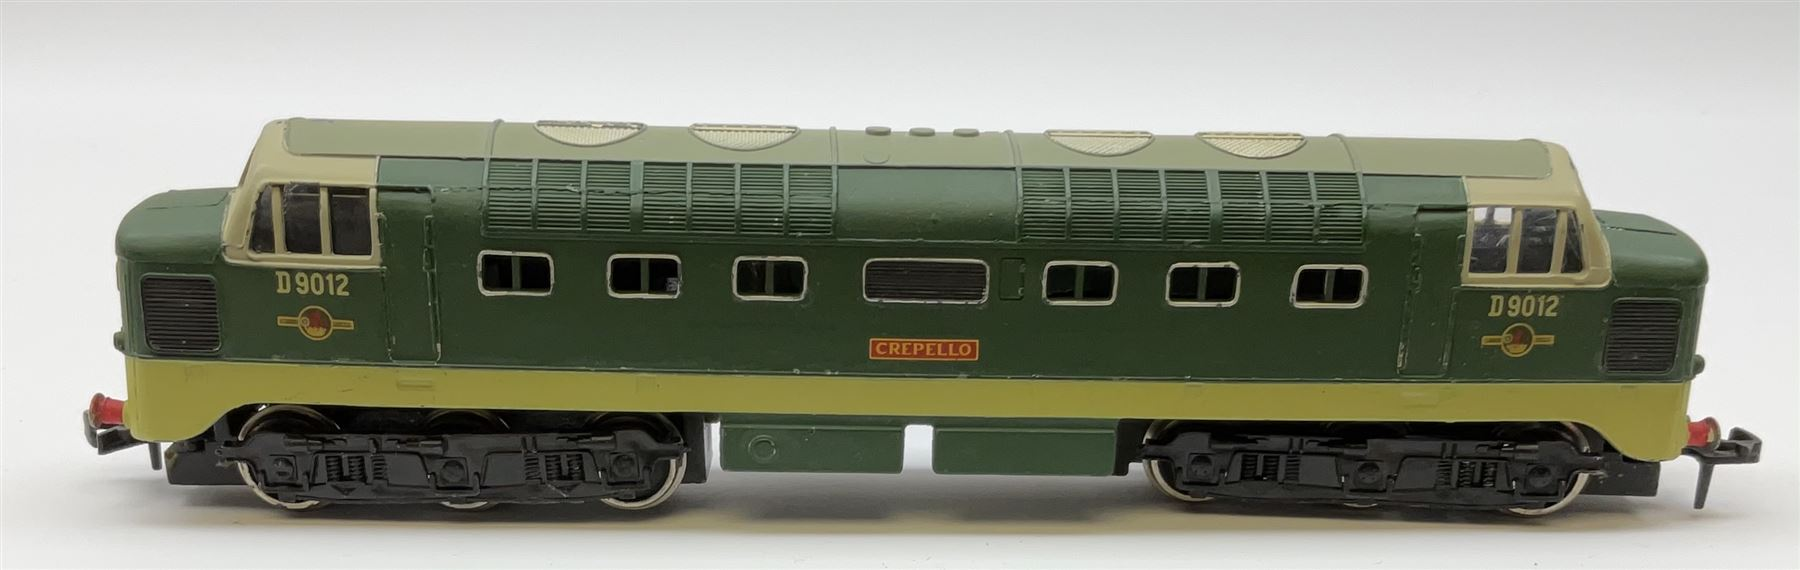 Hornby Dublo - two-rail 2224 Class 8F 2-8-0 locomotive No.48073 with instructions; and 2234 Deltic T - Image 4 of 7